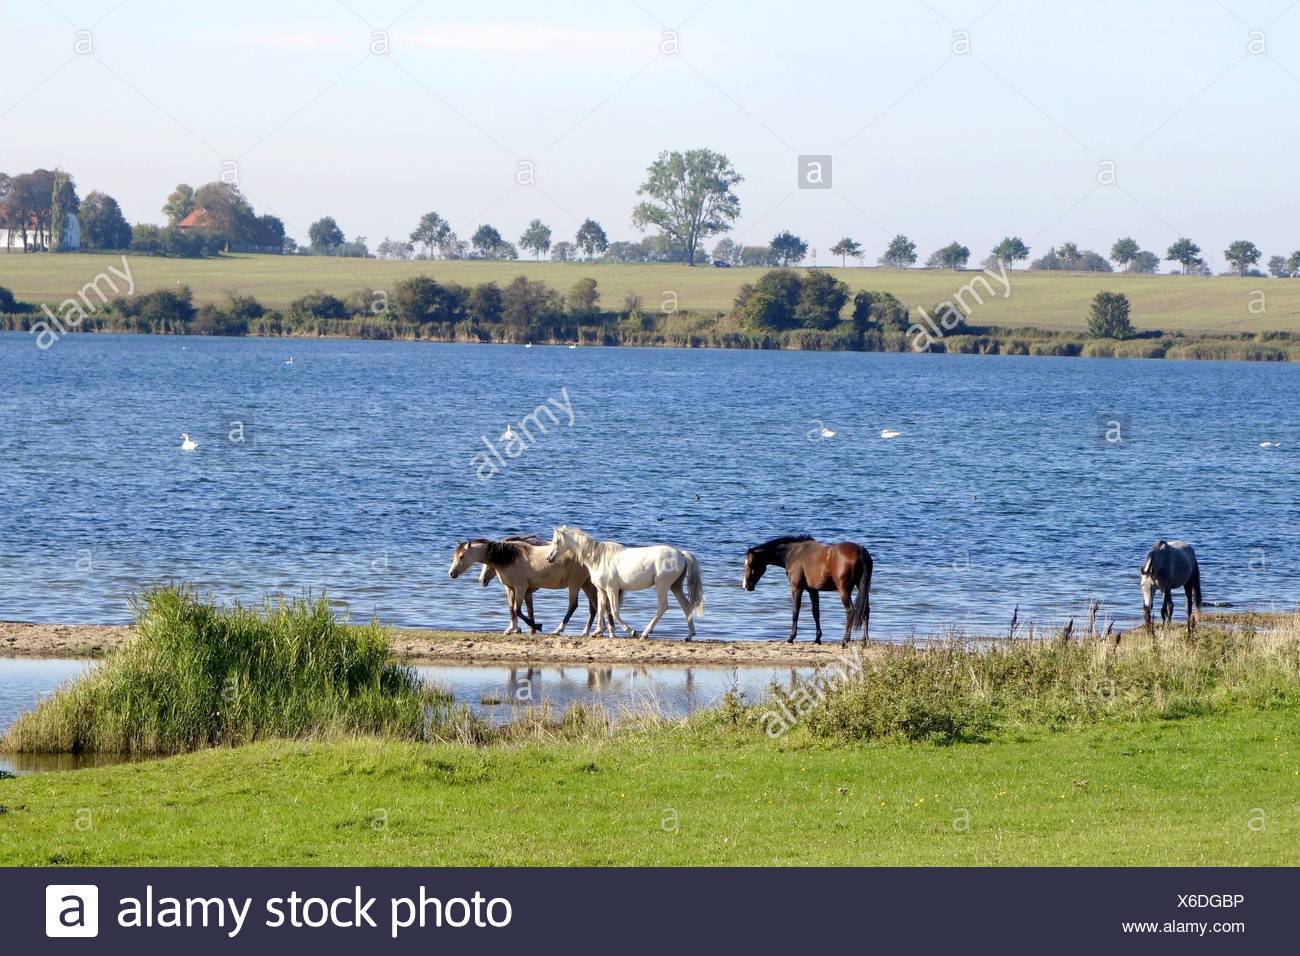 horses in the Bay of Wismar,germany - Stock Image